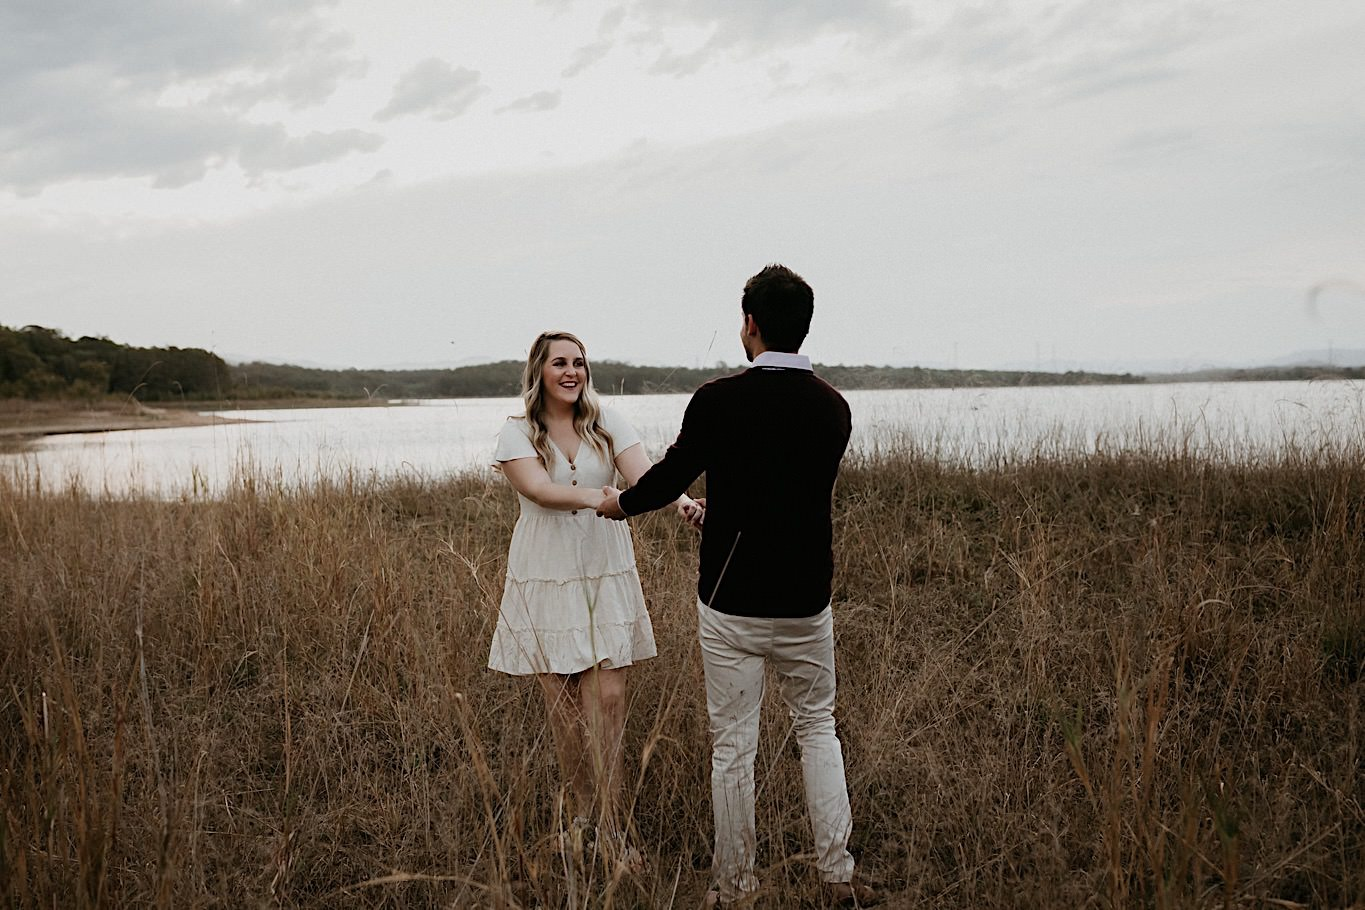 outdoor engagement photo locations near me